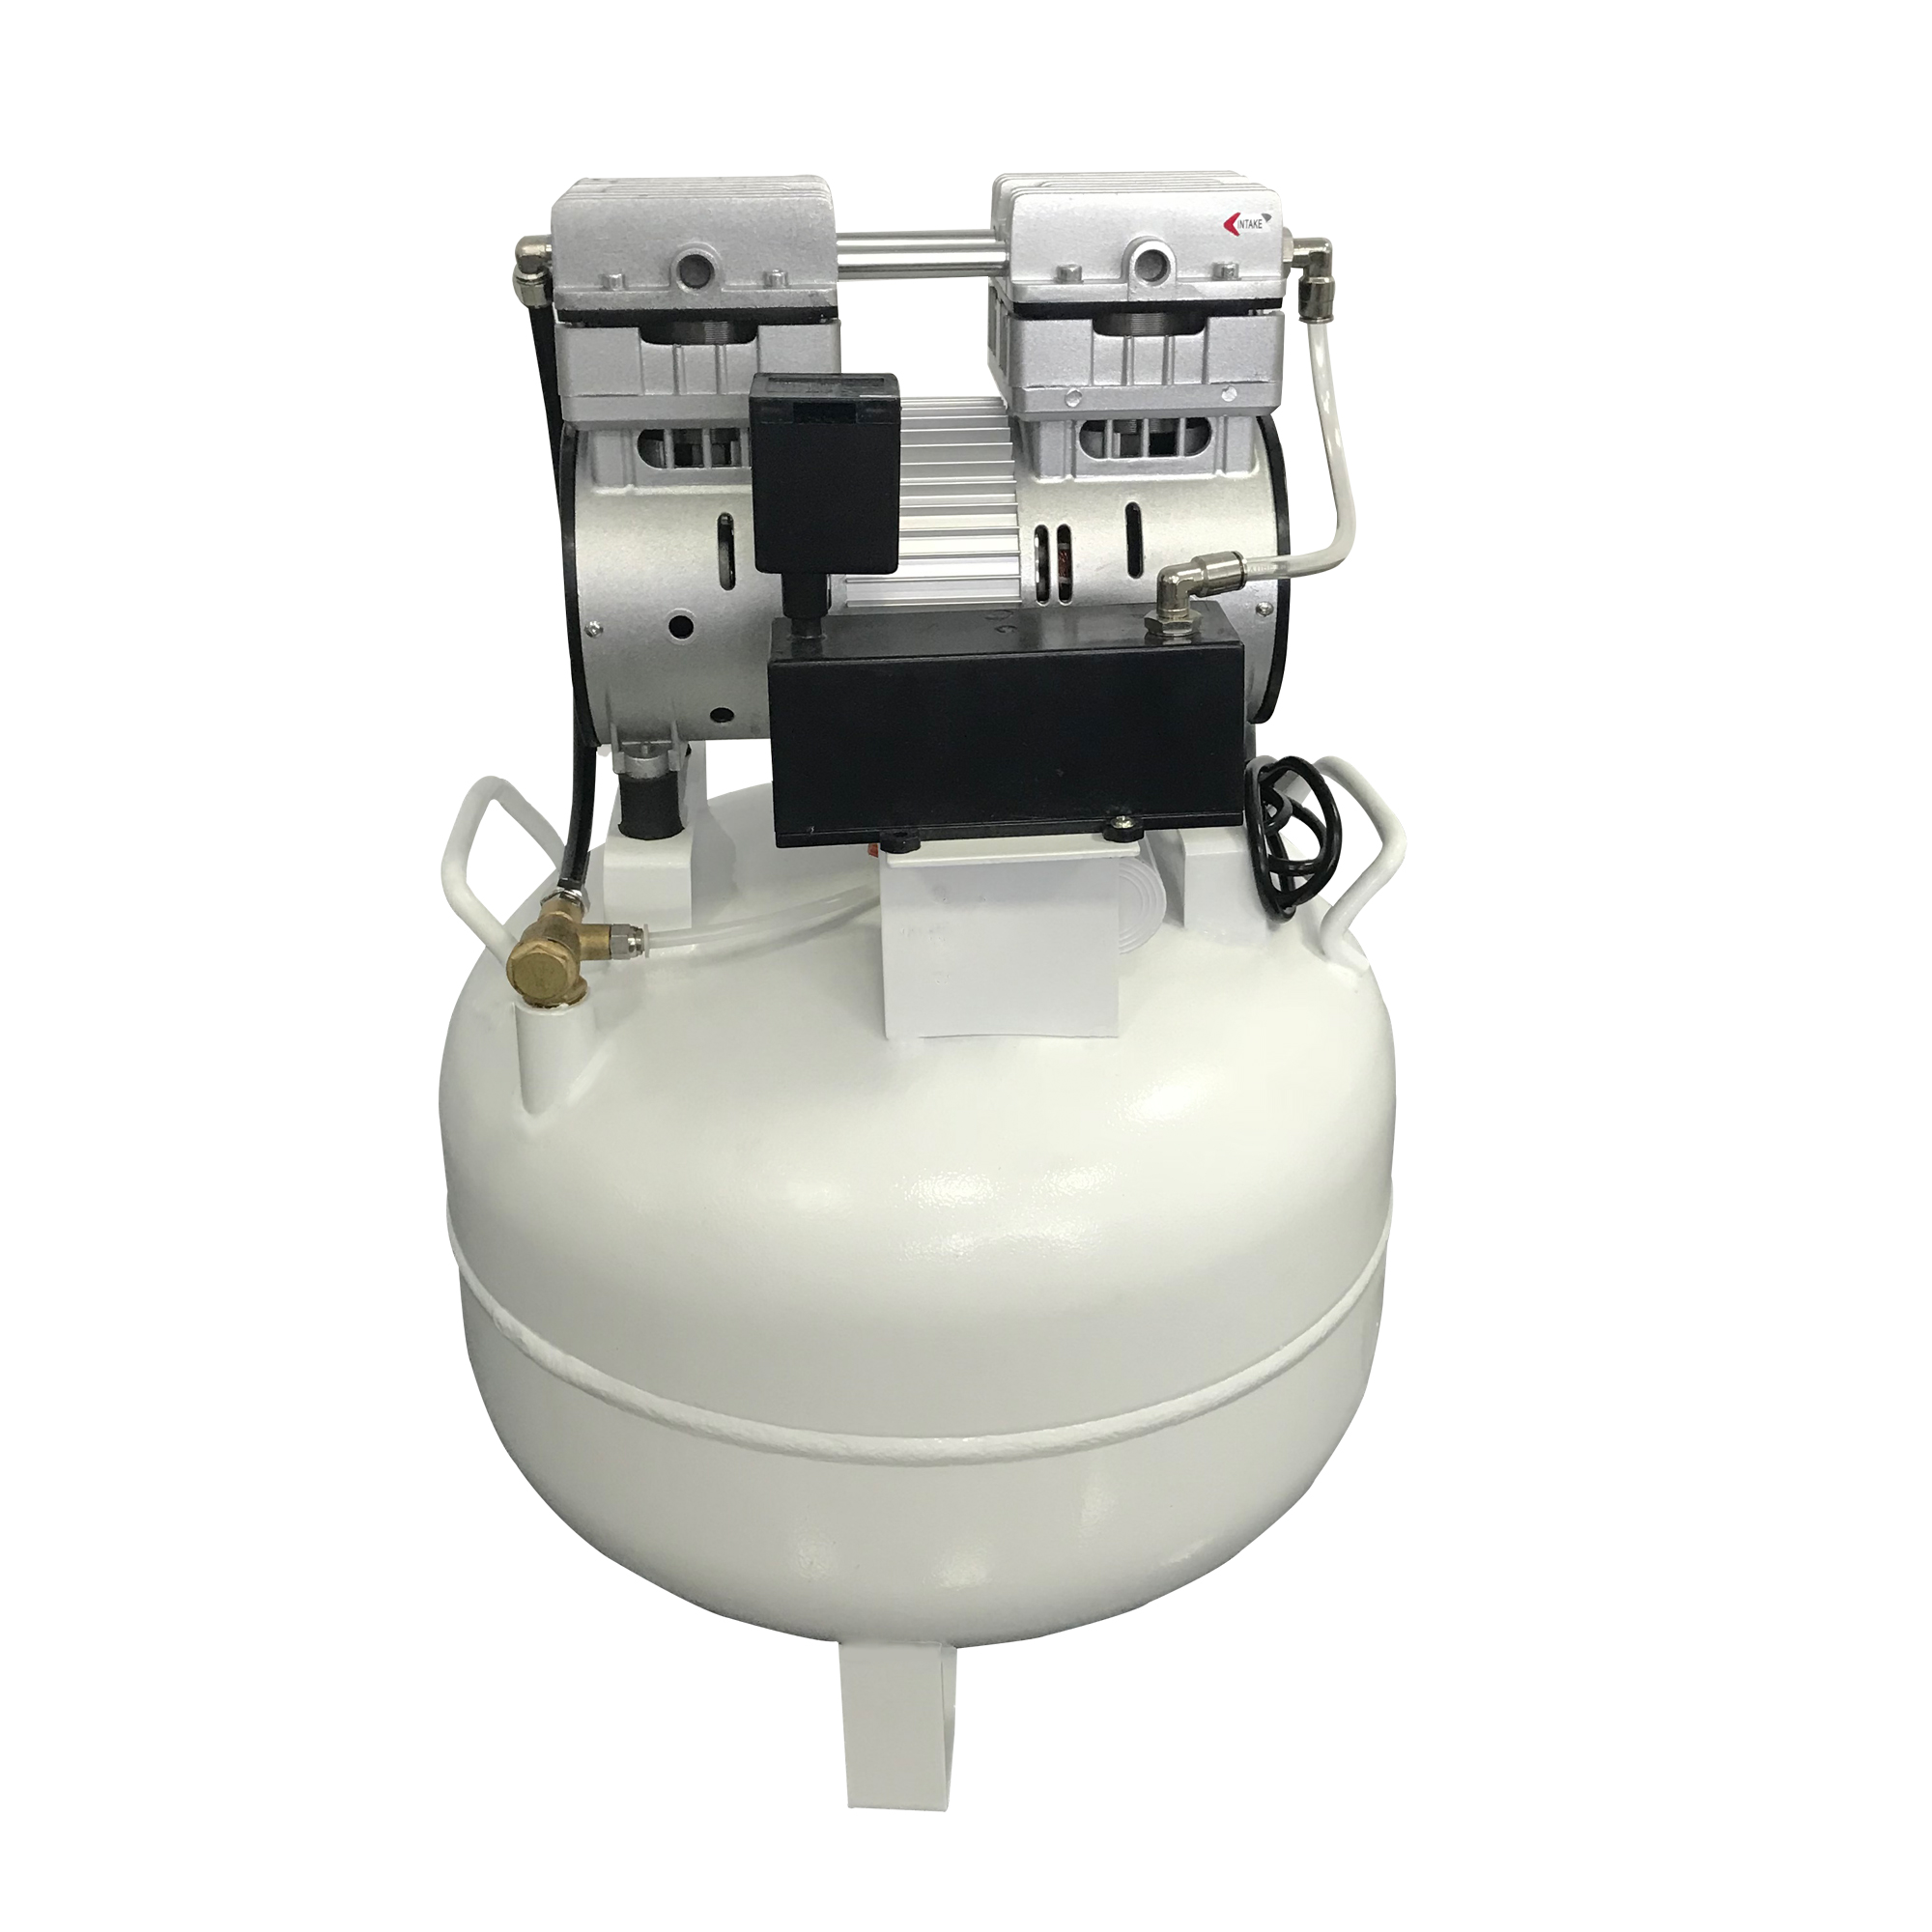 1-Drive-1 Dental Air Compressor Noiseless Oiless Zeta 101